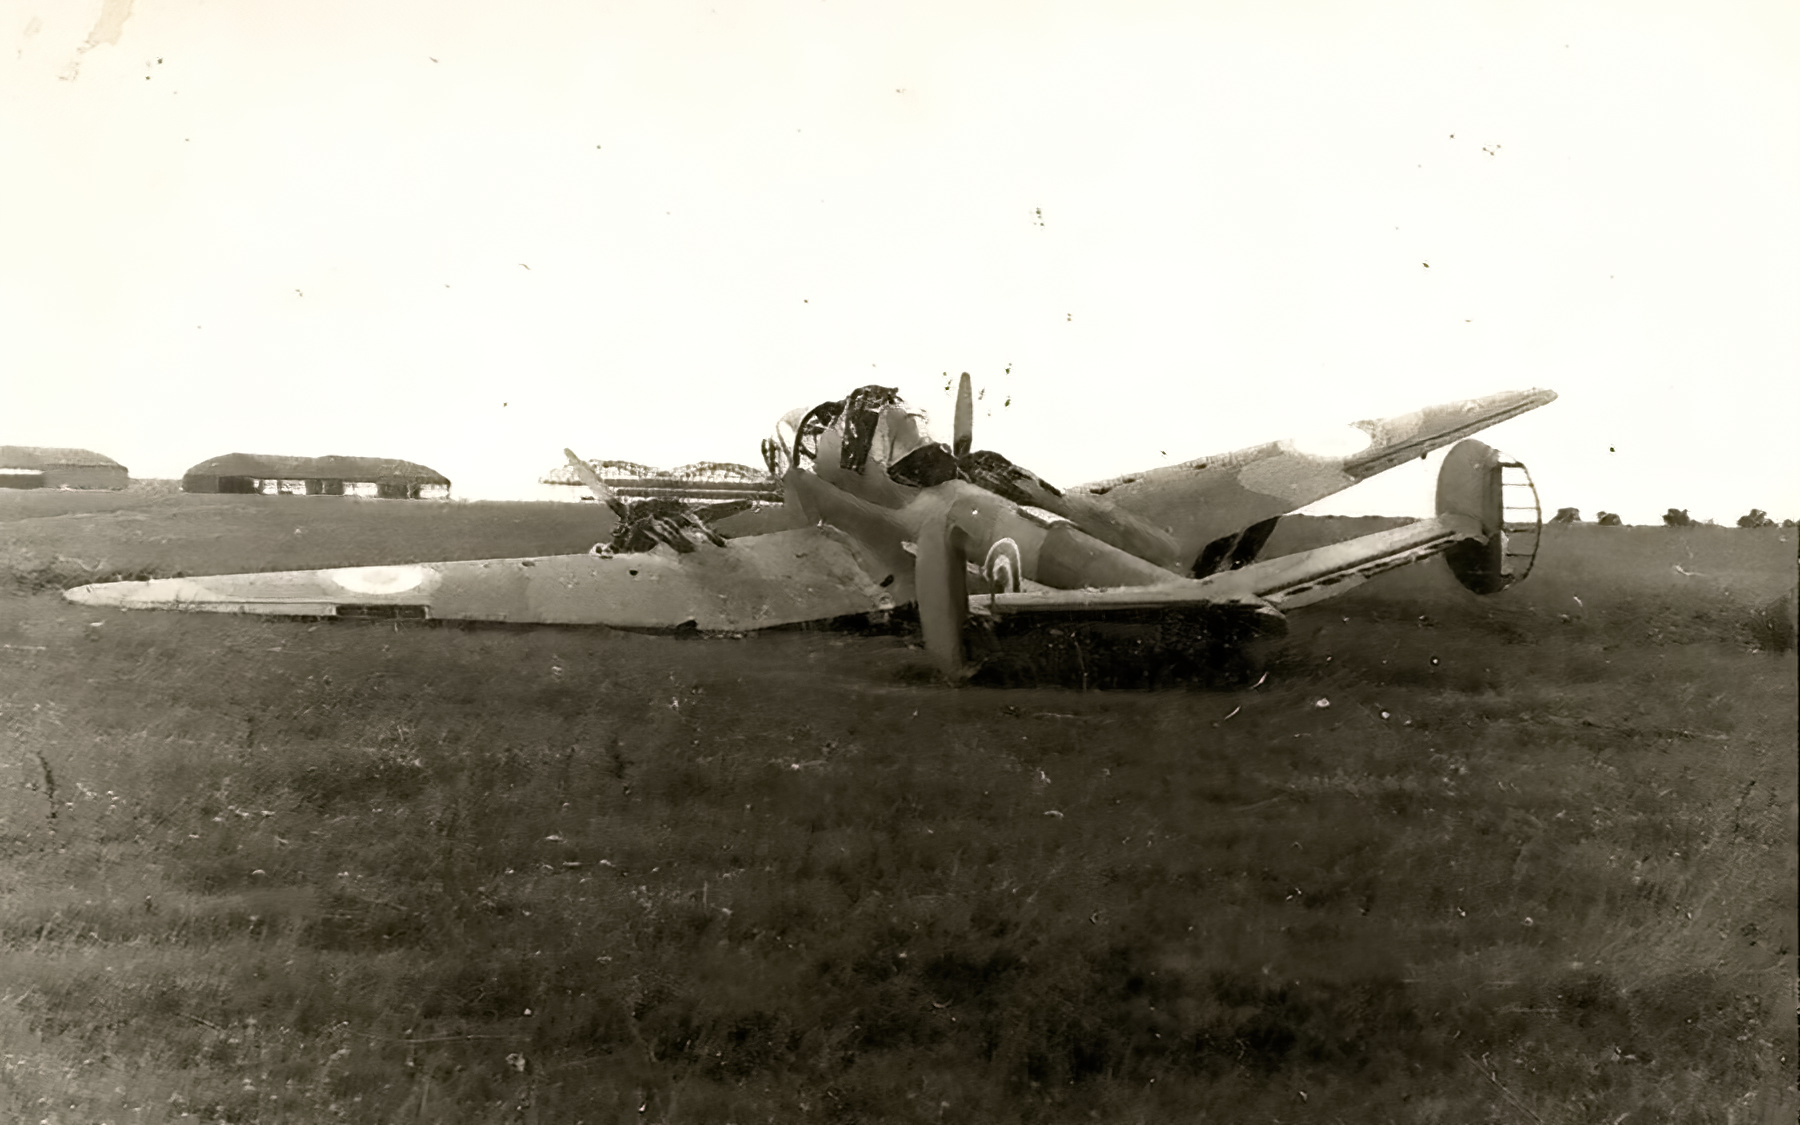 French Airforce Potez 63.11 destroyed whilst on the ground France May Jun 1940 ebay 02